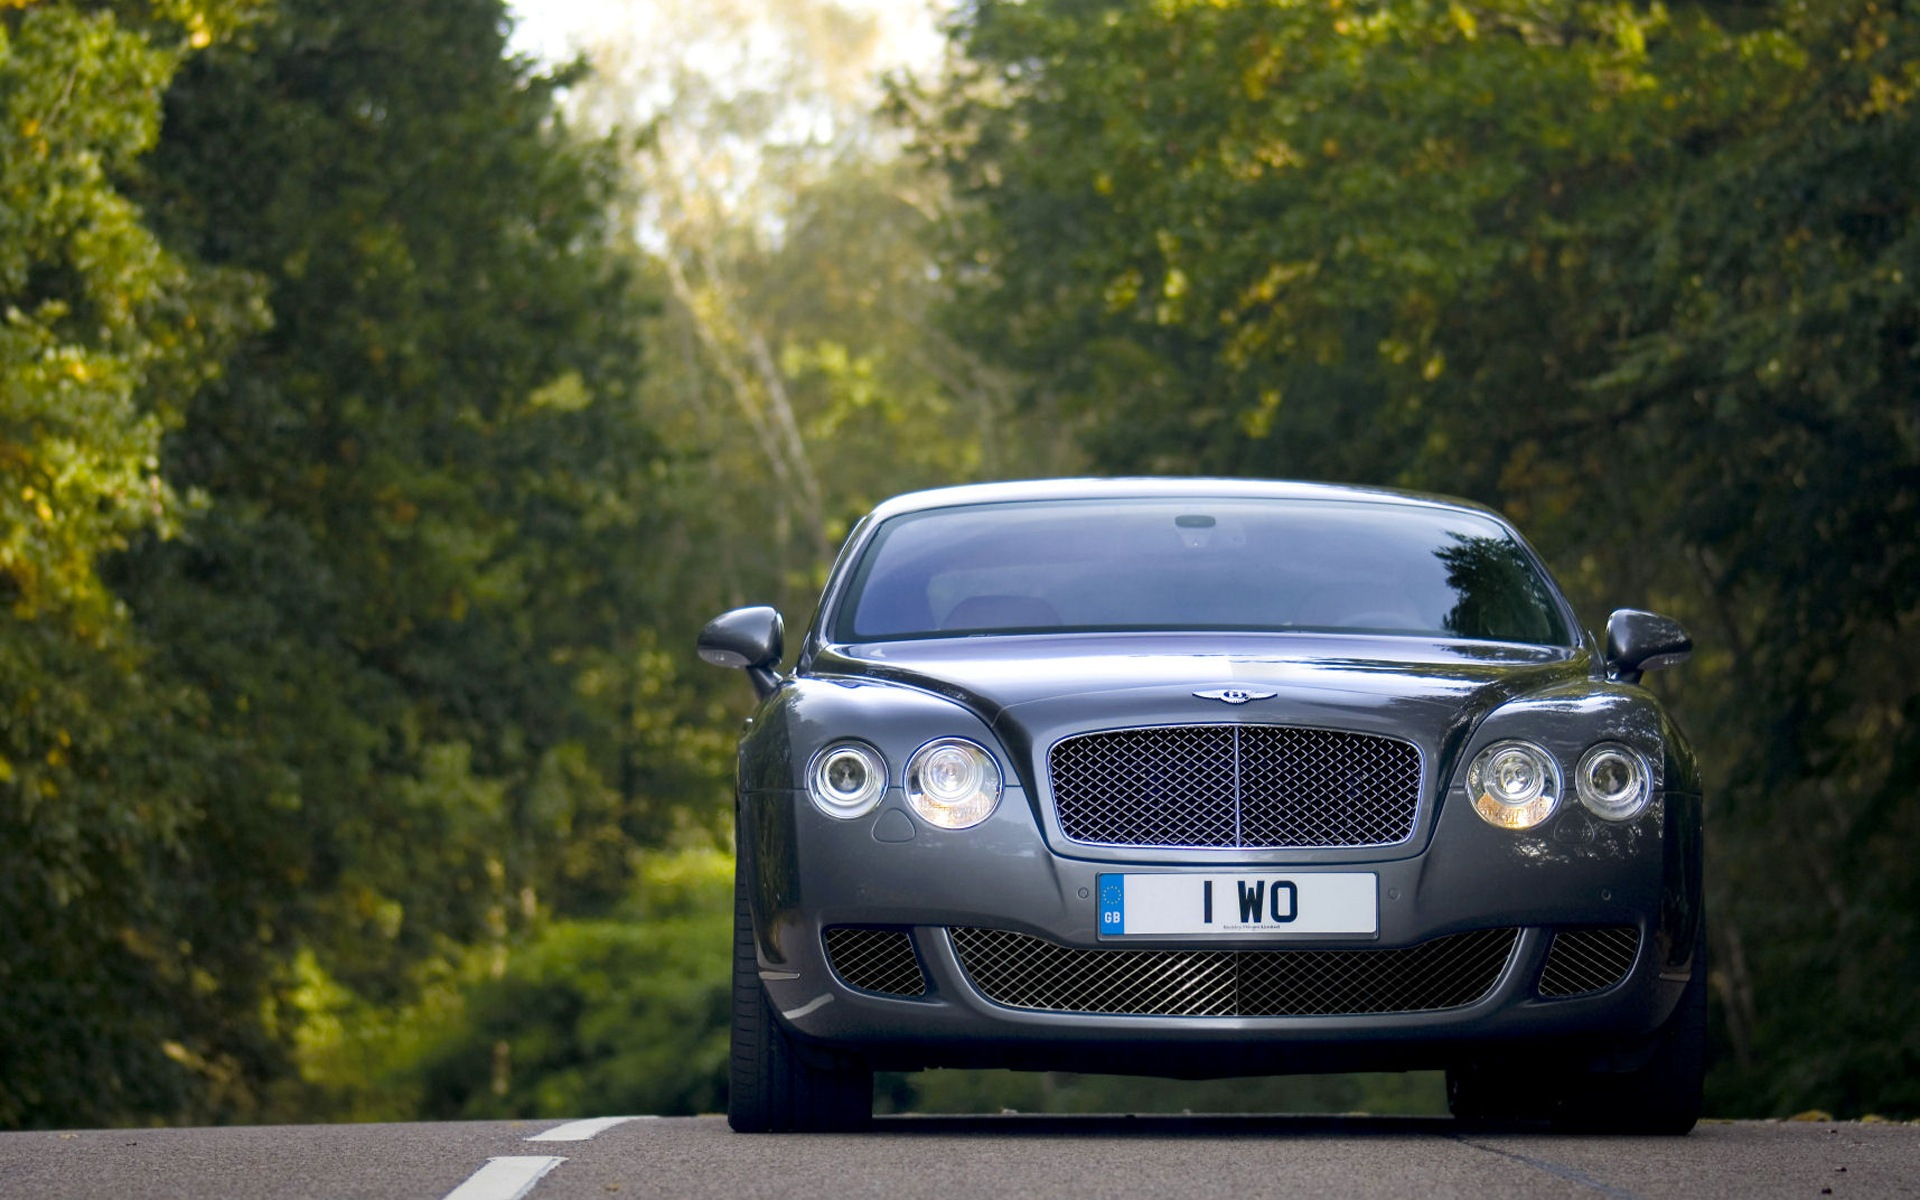 Bentley Continental Gt Front View Car Cars Cool Wallpapers